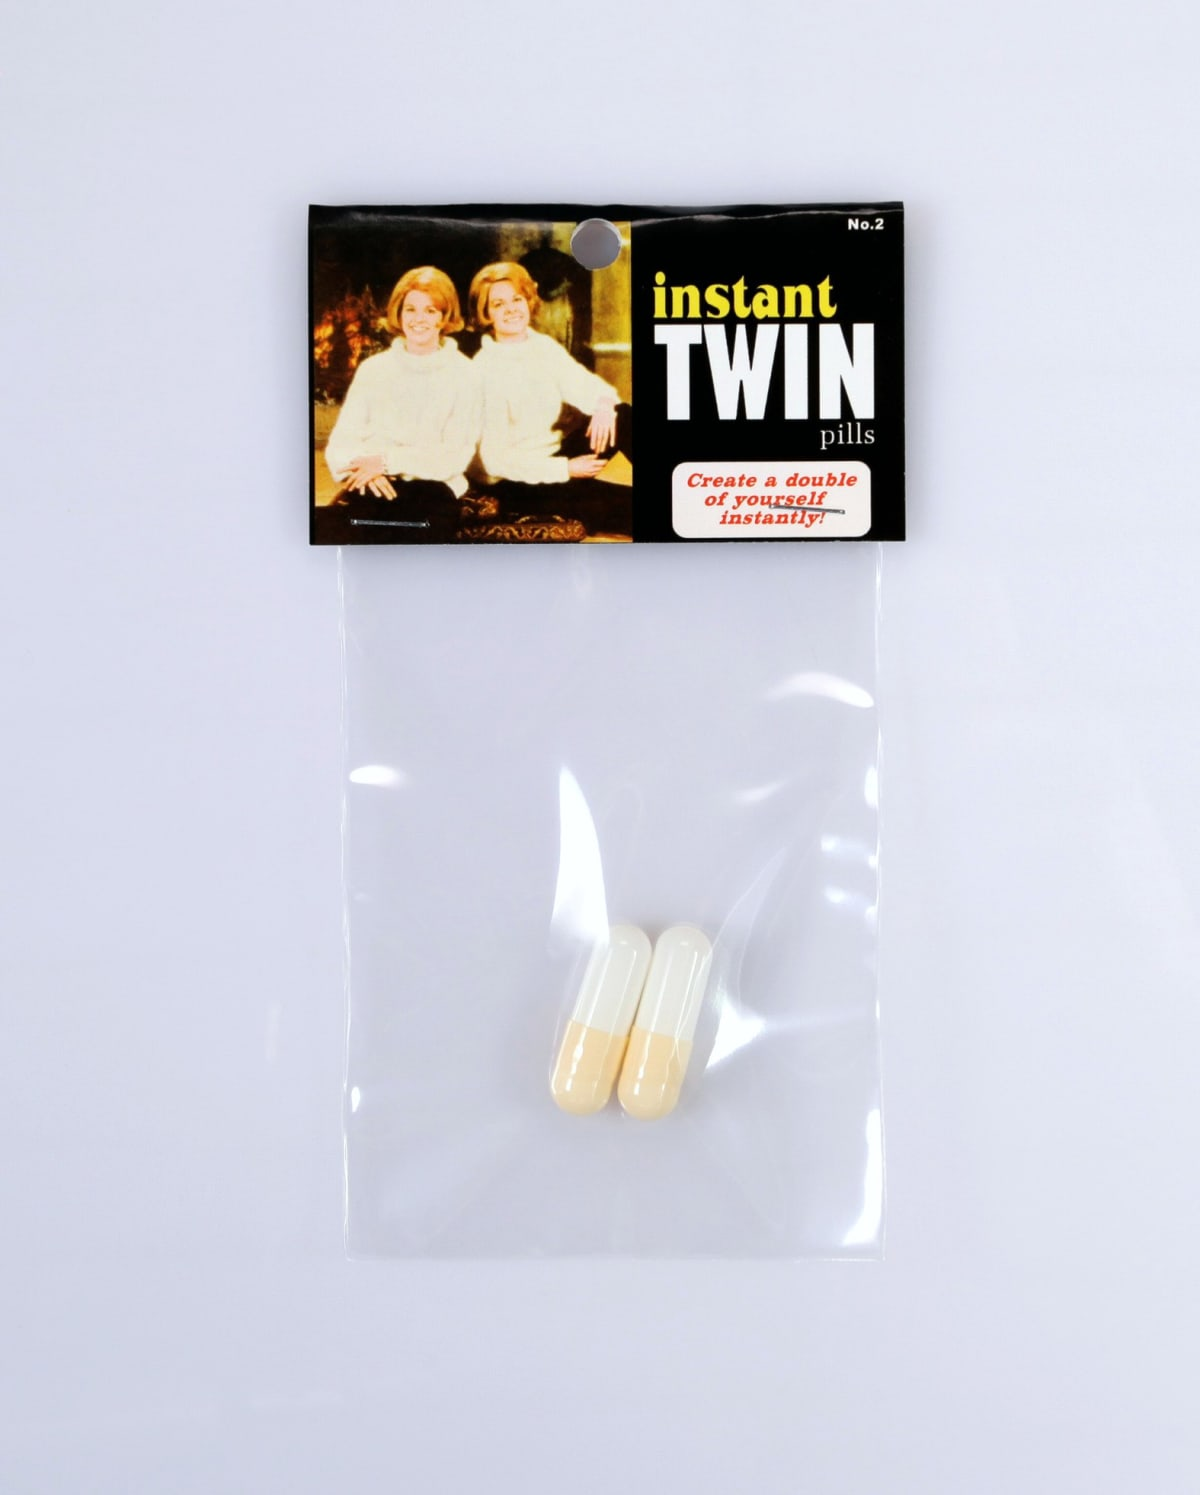 Instant twin pills